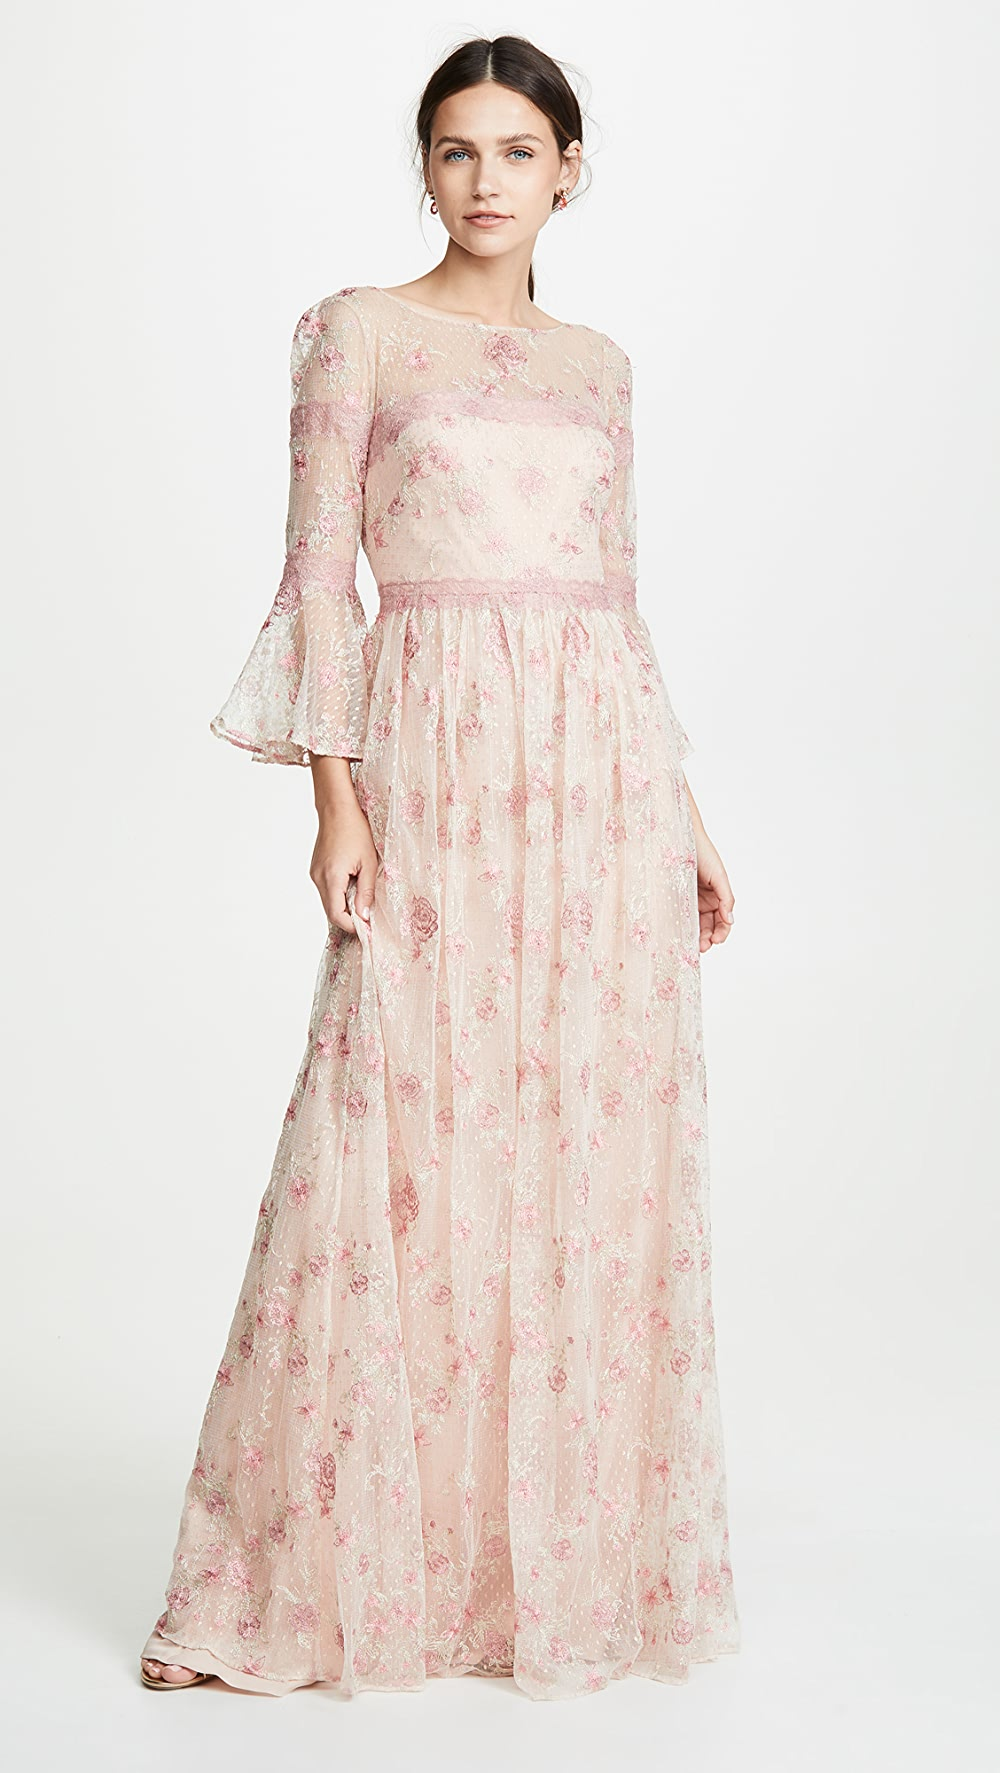 Professional Sale Marchesa Notte - Flounce Sleeve Embroidered A-line Gown Discounts Sale